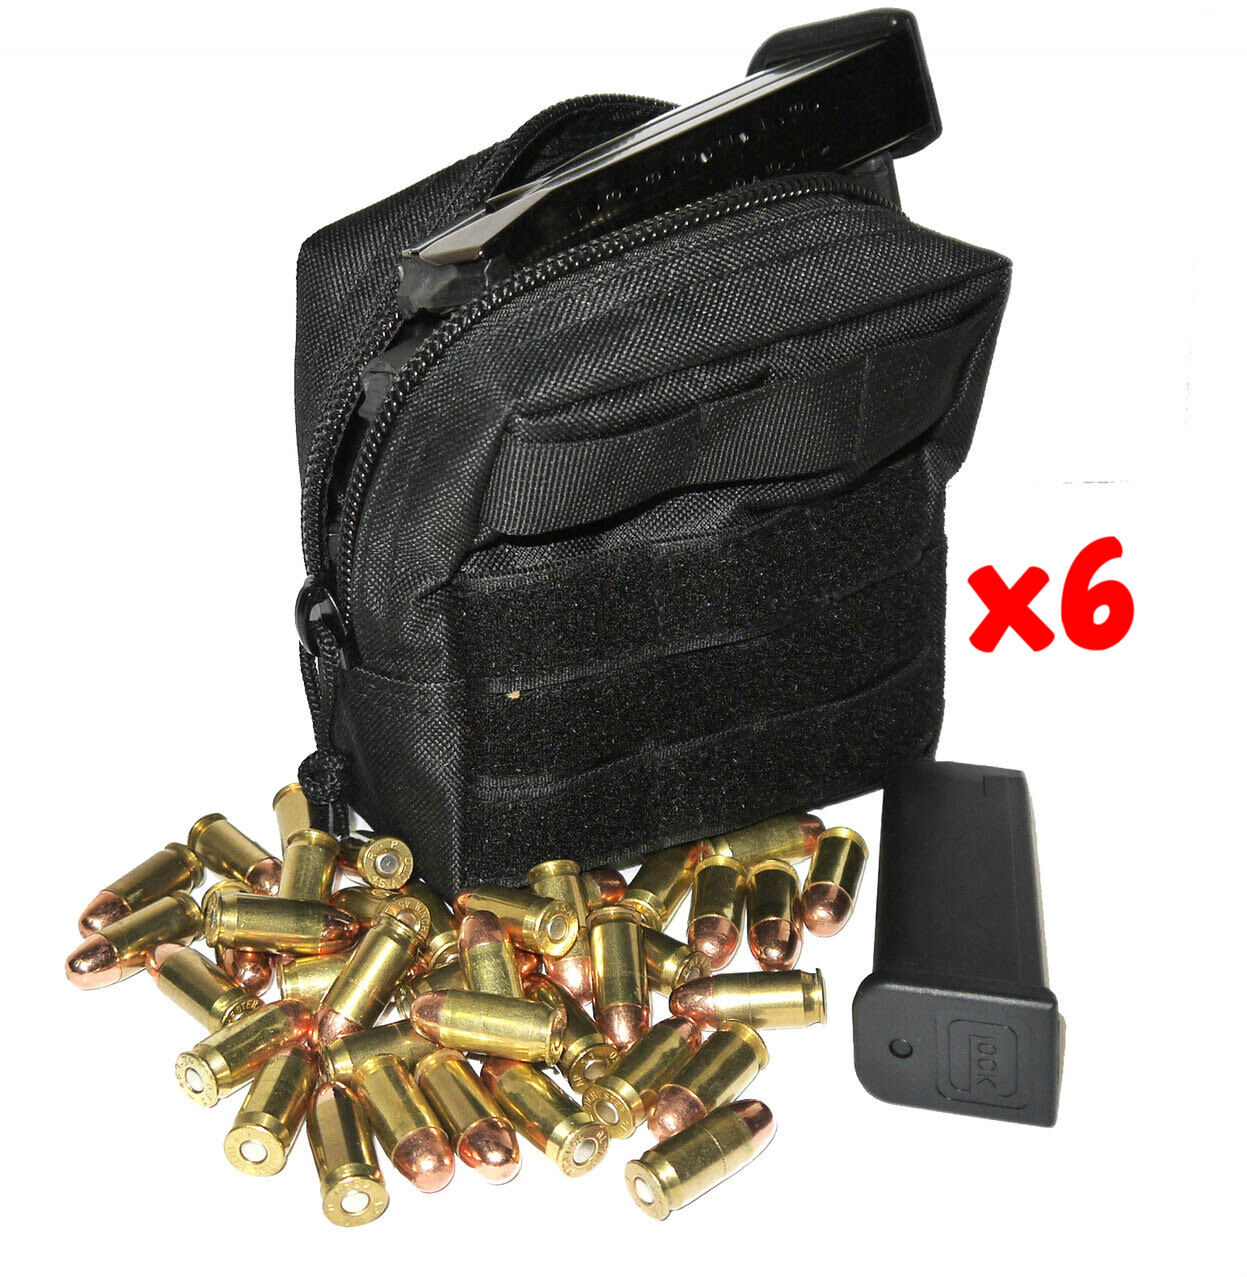 (6) 10MM AMMO MODULAR MOLLE UTILITY POUCH FRONT HOOK LOOP STRAP